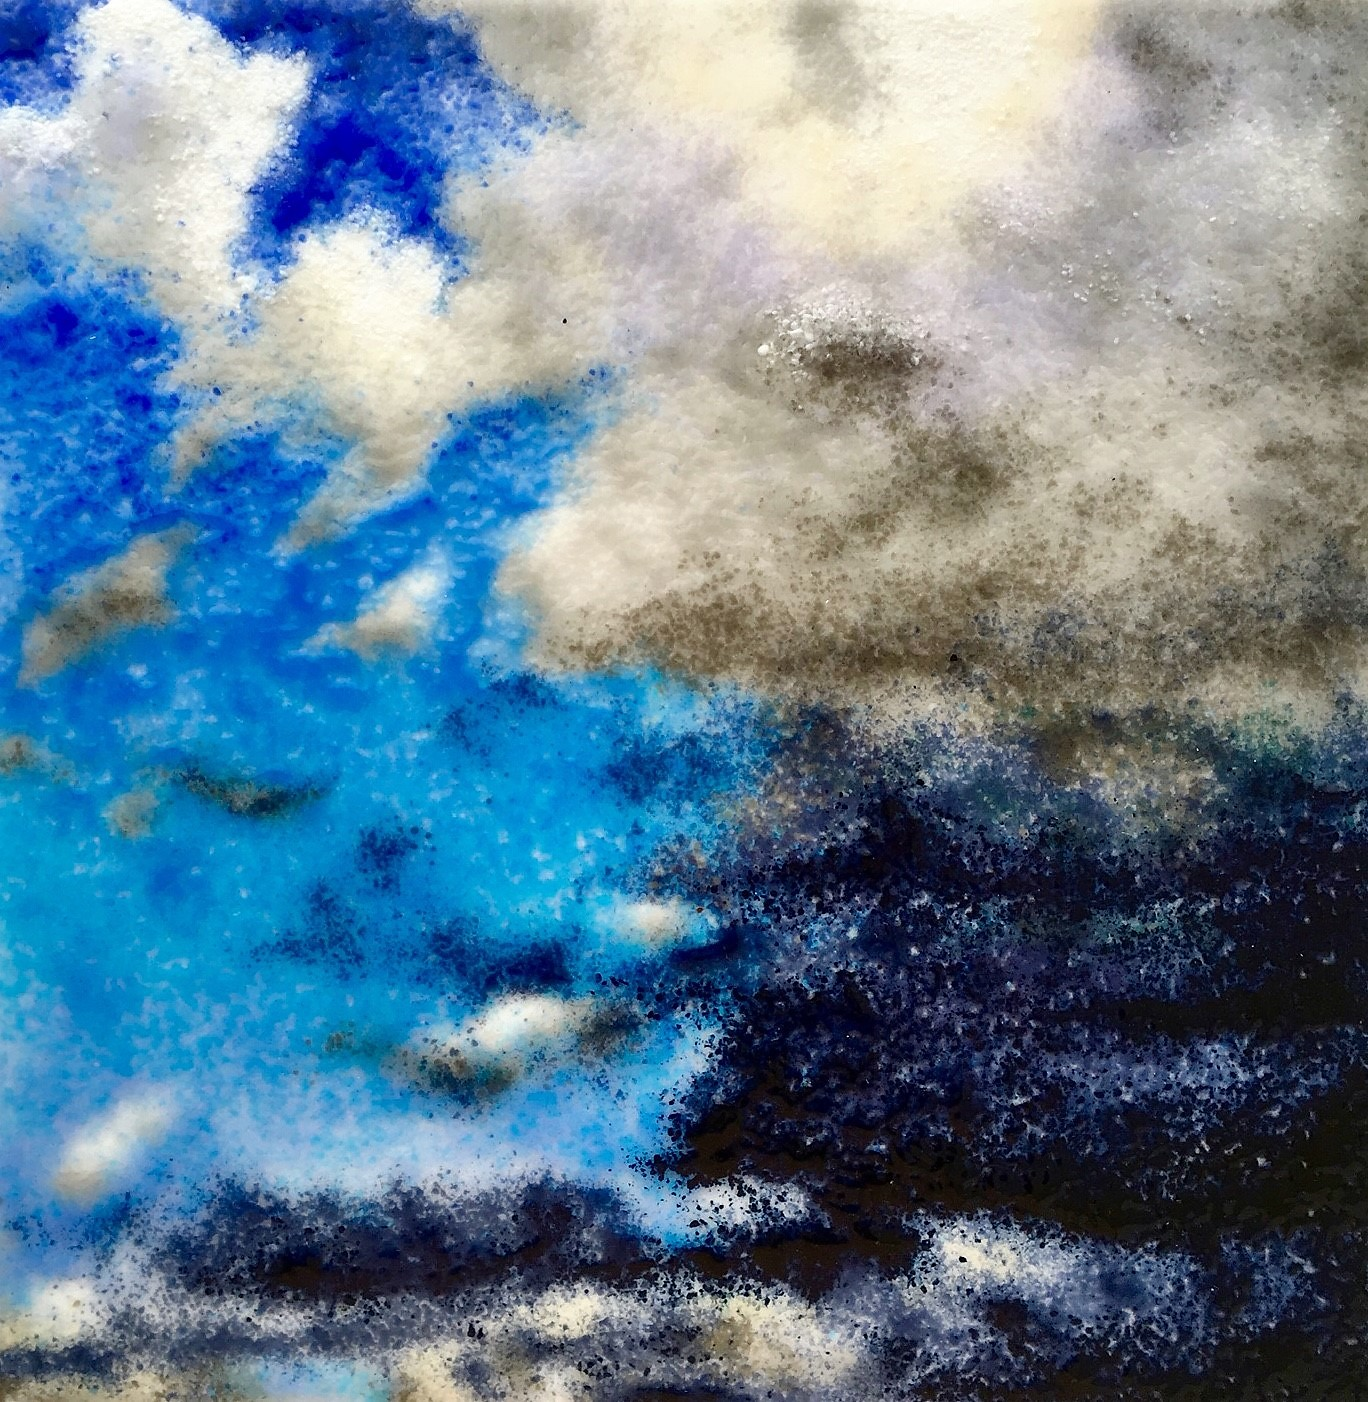 Clouds Gathering - SOLD